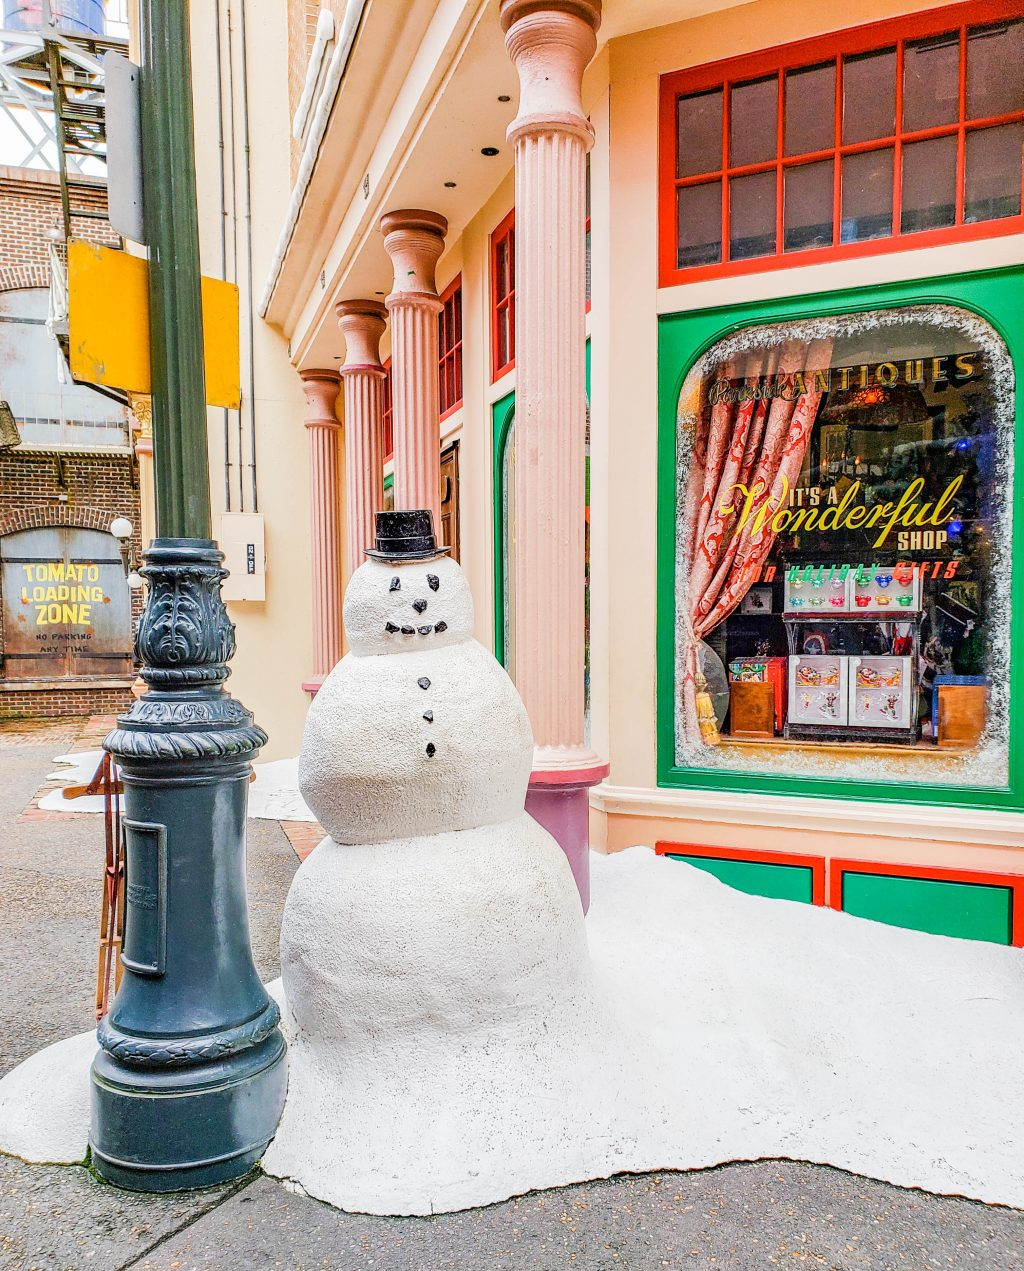 A snowman sits in front of a pile of snow in front of It's a Wonderful Shop in Disney's Hollywood Studios.